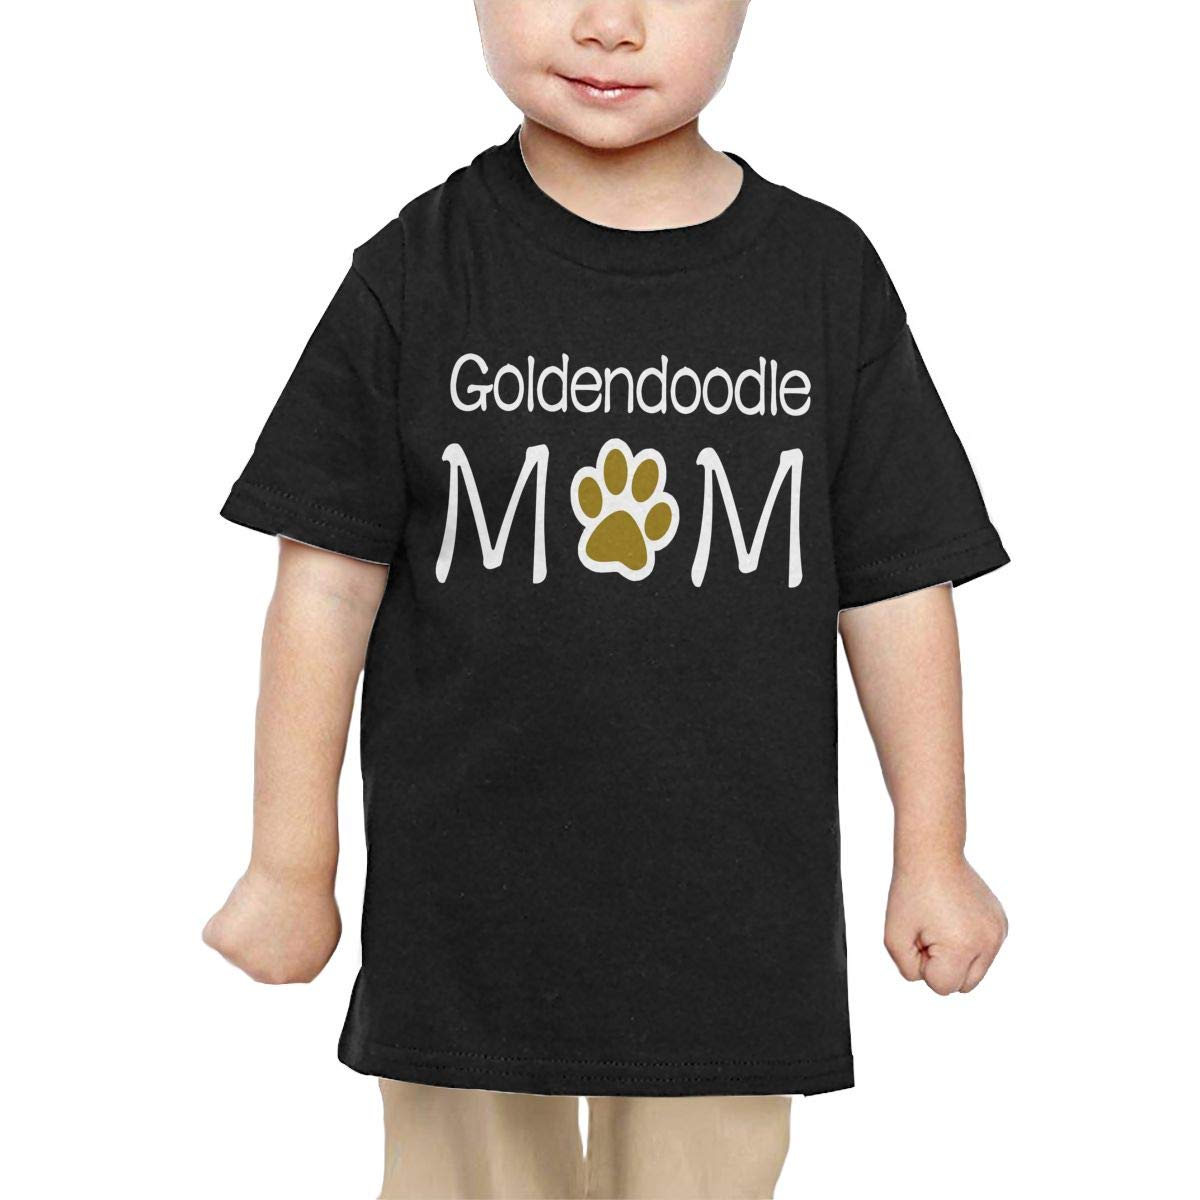 Chunmmmmm Goldendoodle Mom Baby Kids Short Sleeve Round Neck Cotton Tshit